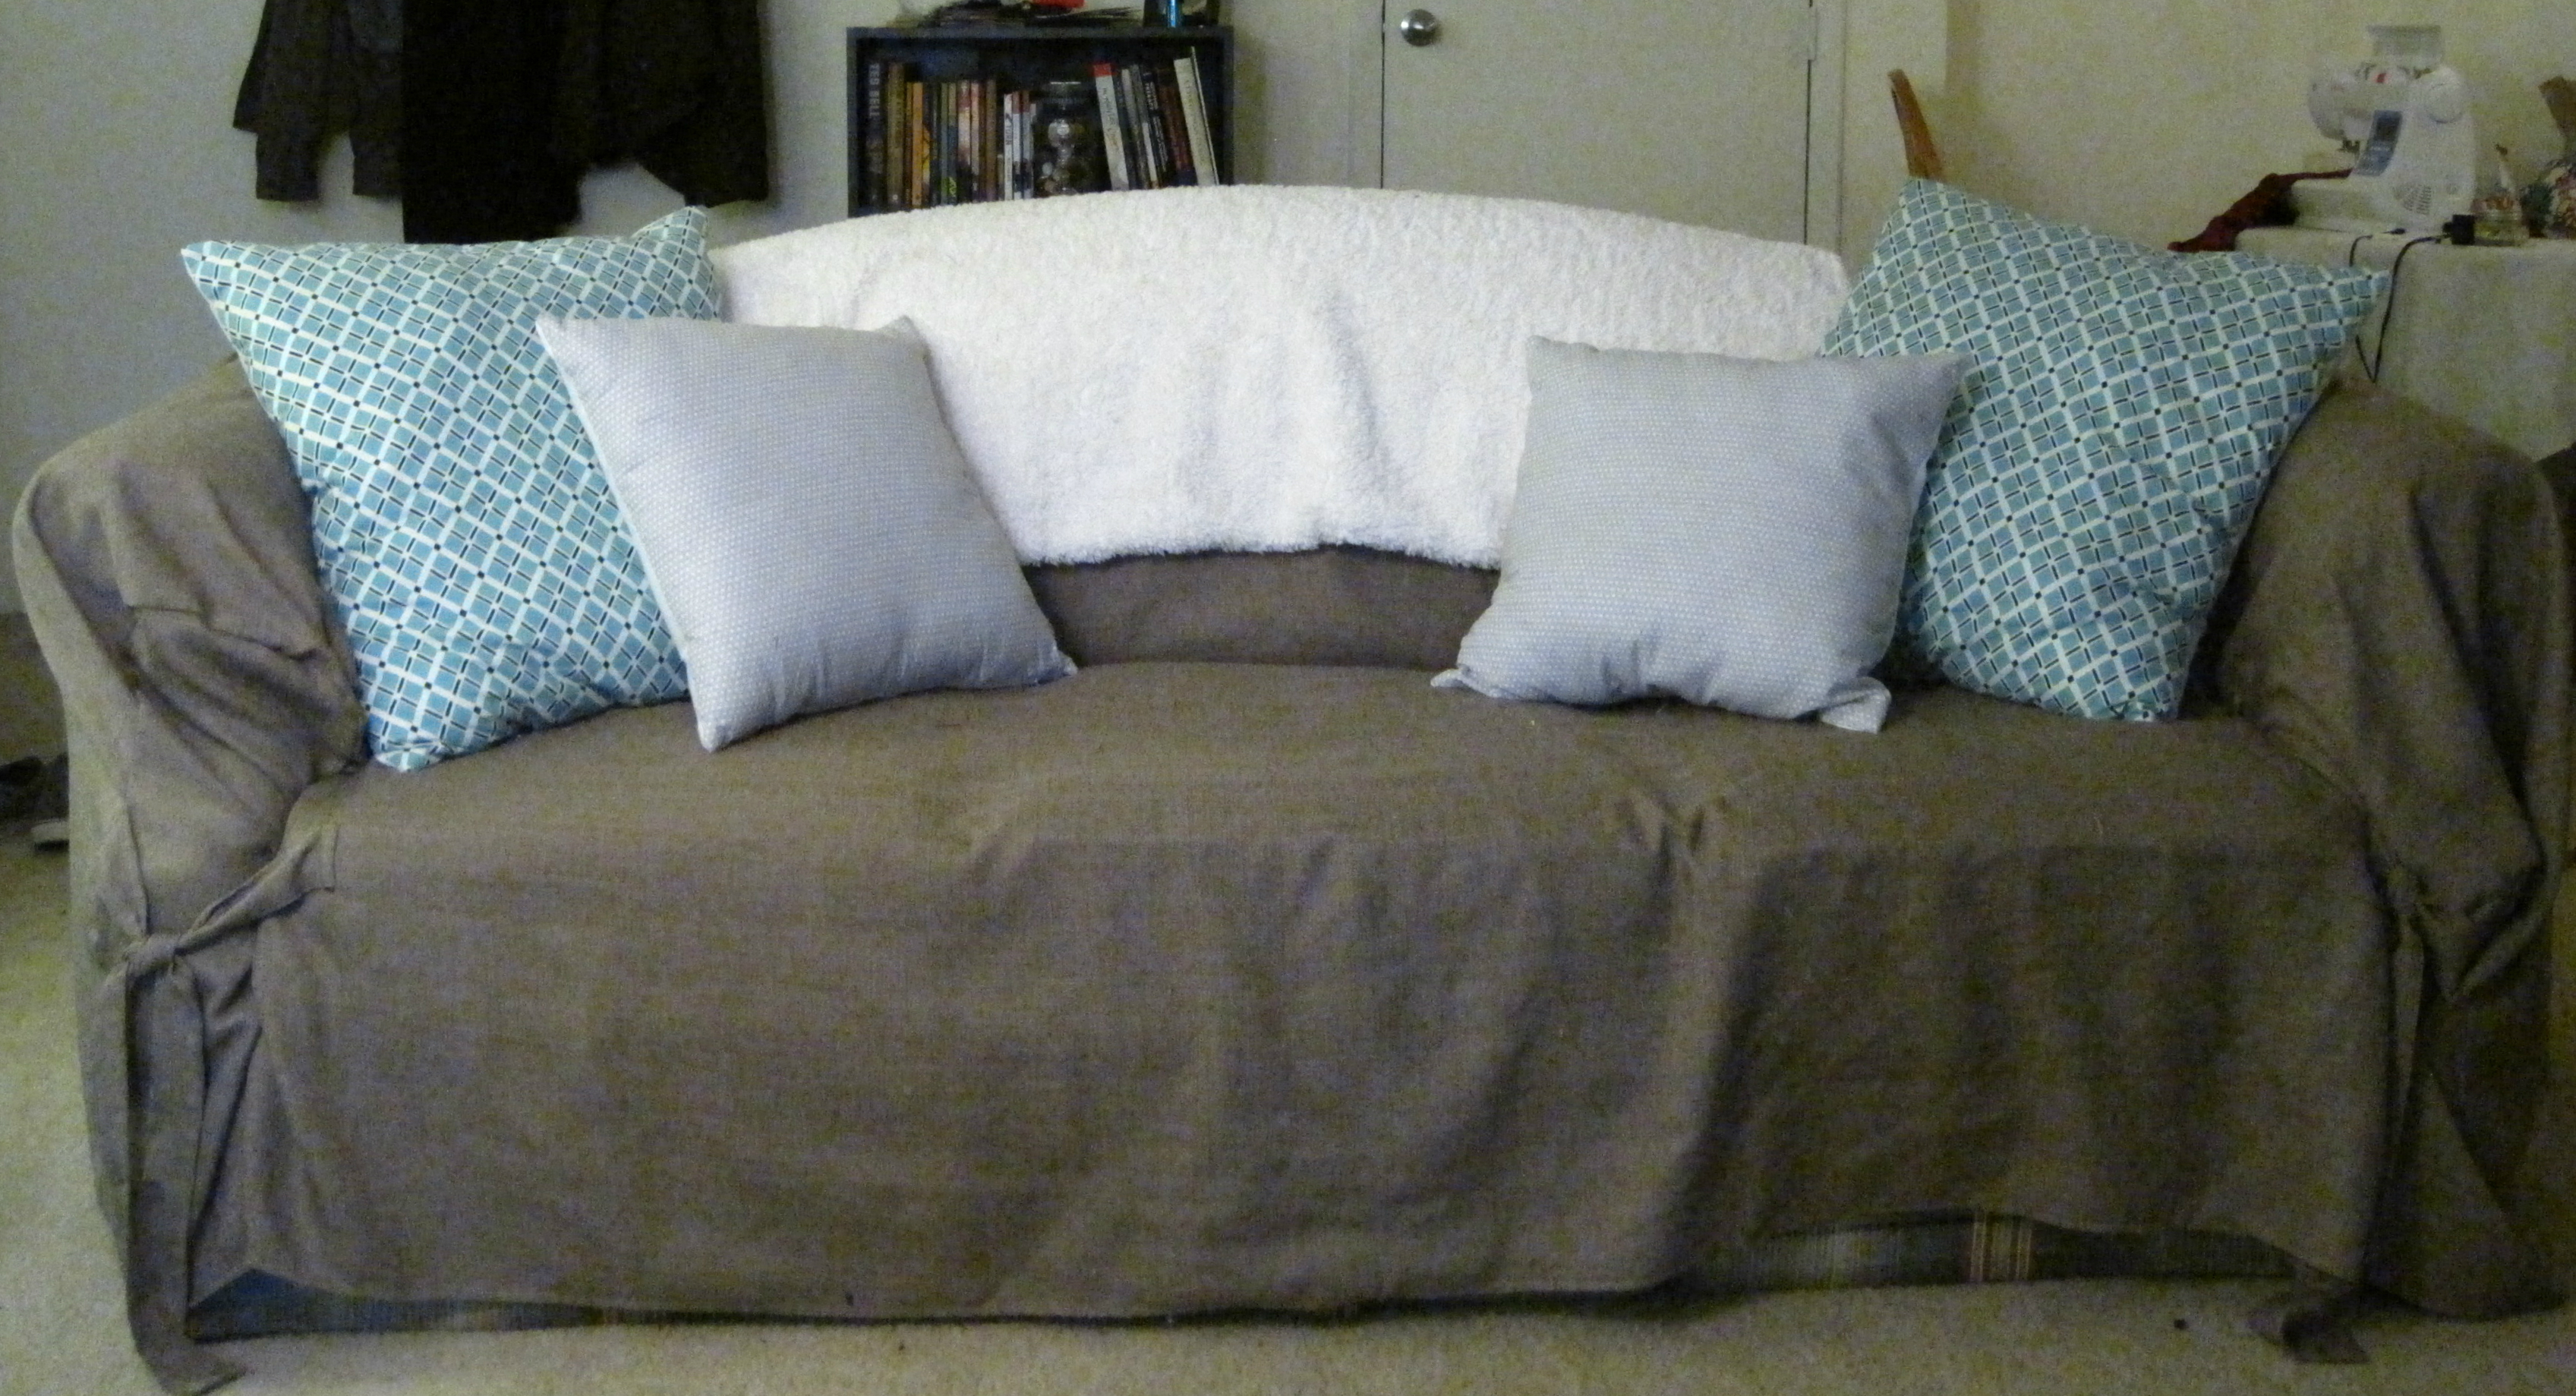 sofa bed furniture galore who makes the best sofas in us pillow cases made new 517